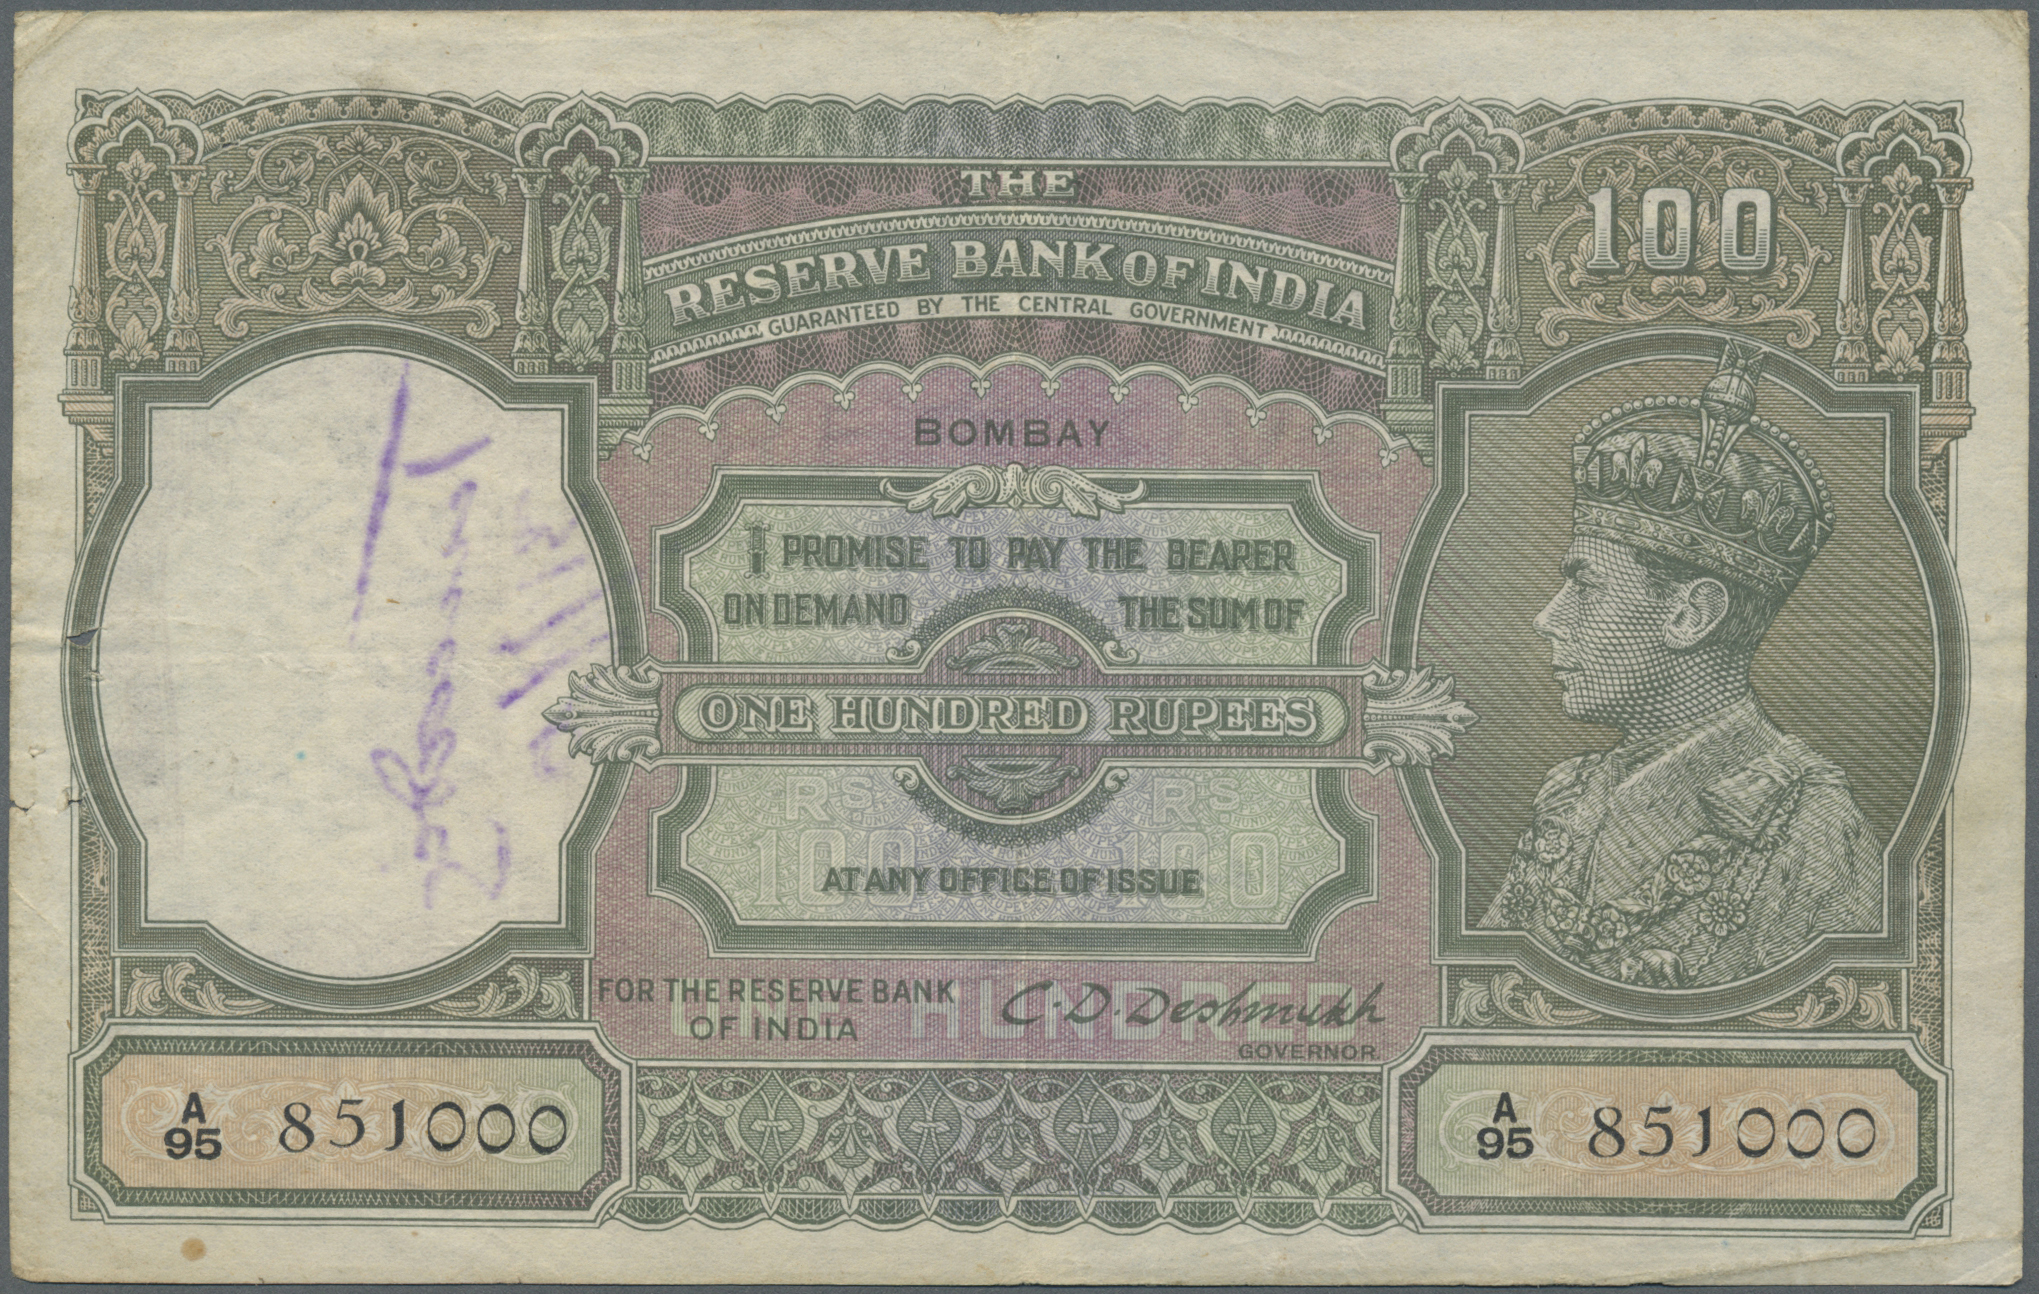 Lot 829 - India / Indien | Banknoten  -  Auktionshaus Christoph Gärtner GmbH & Co. KG Banknotes Worldwide Auction #39 Day 1